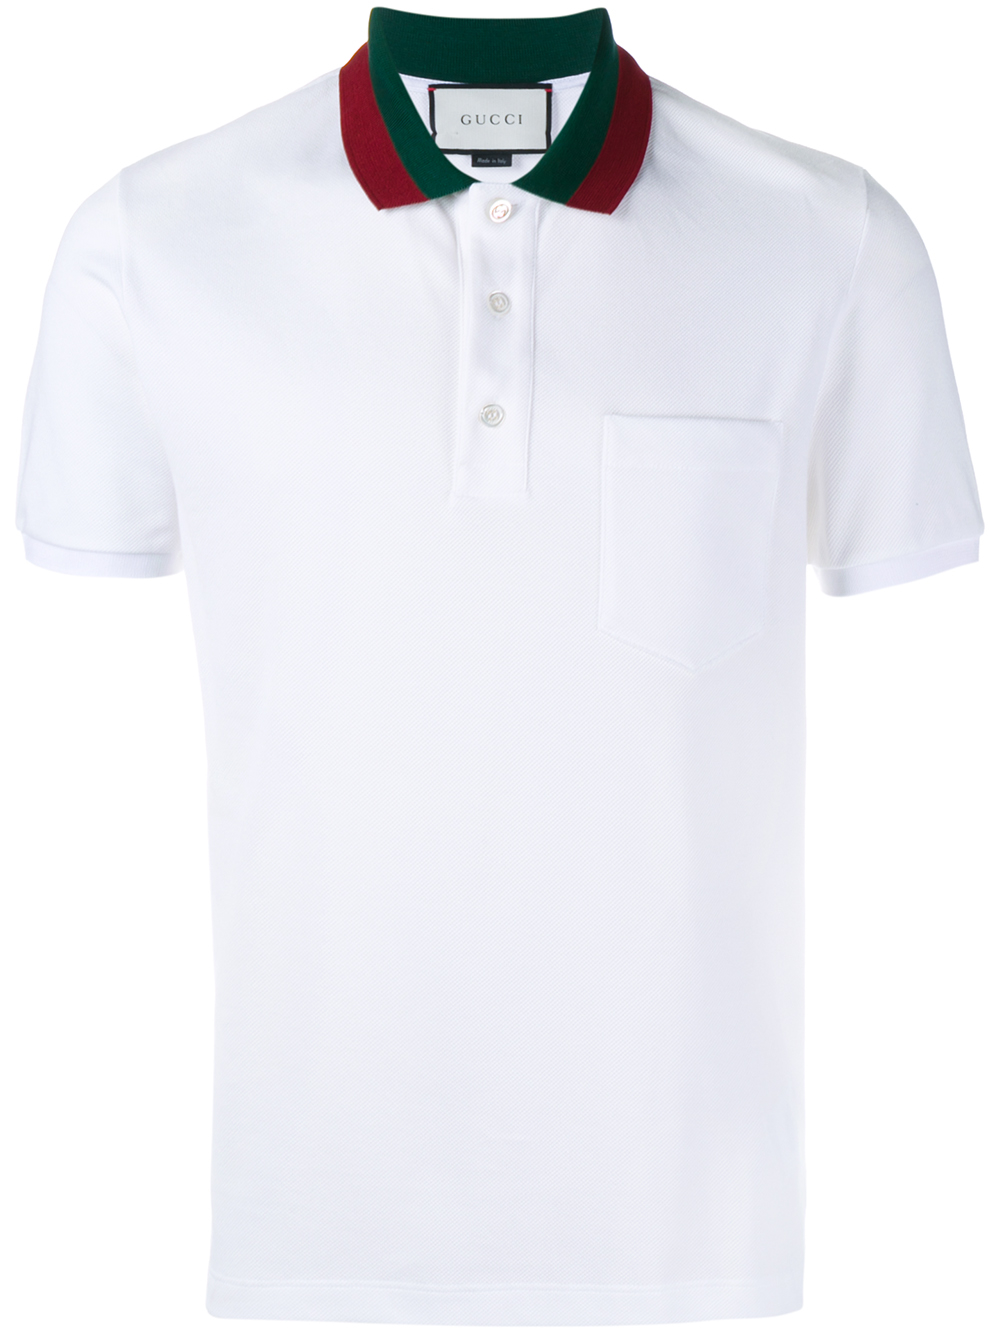 bae88667 Gucci Striped Collar Polo T-shirt in White for Men - Lyst